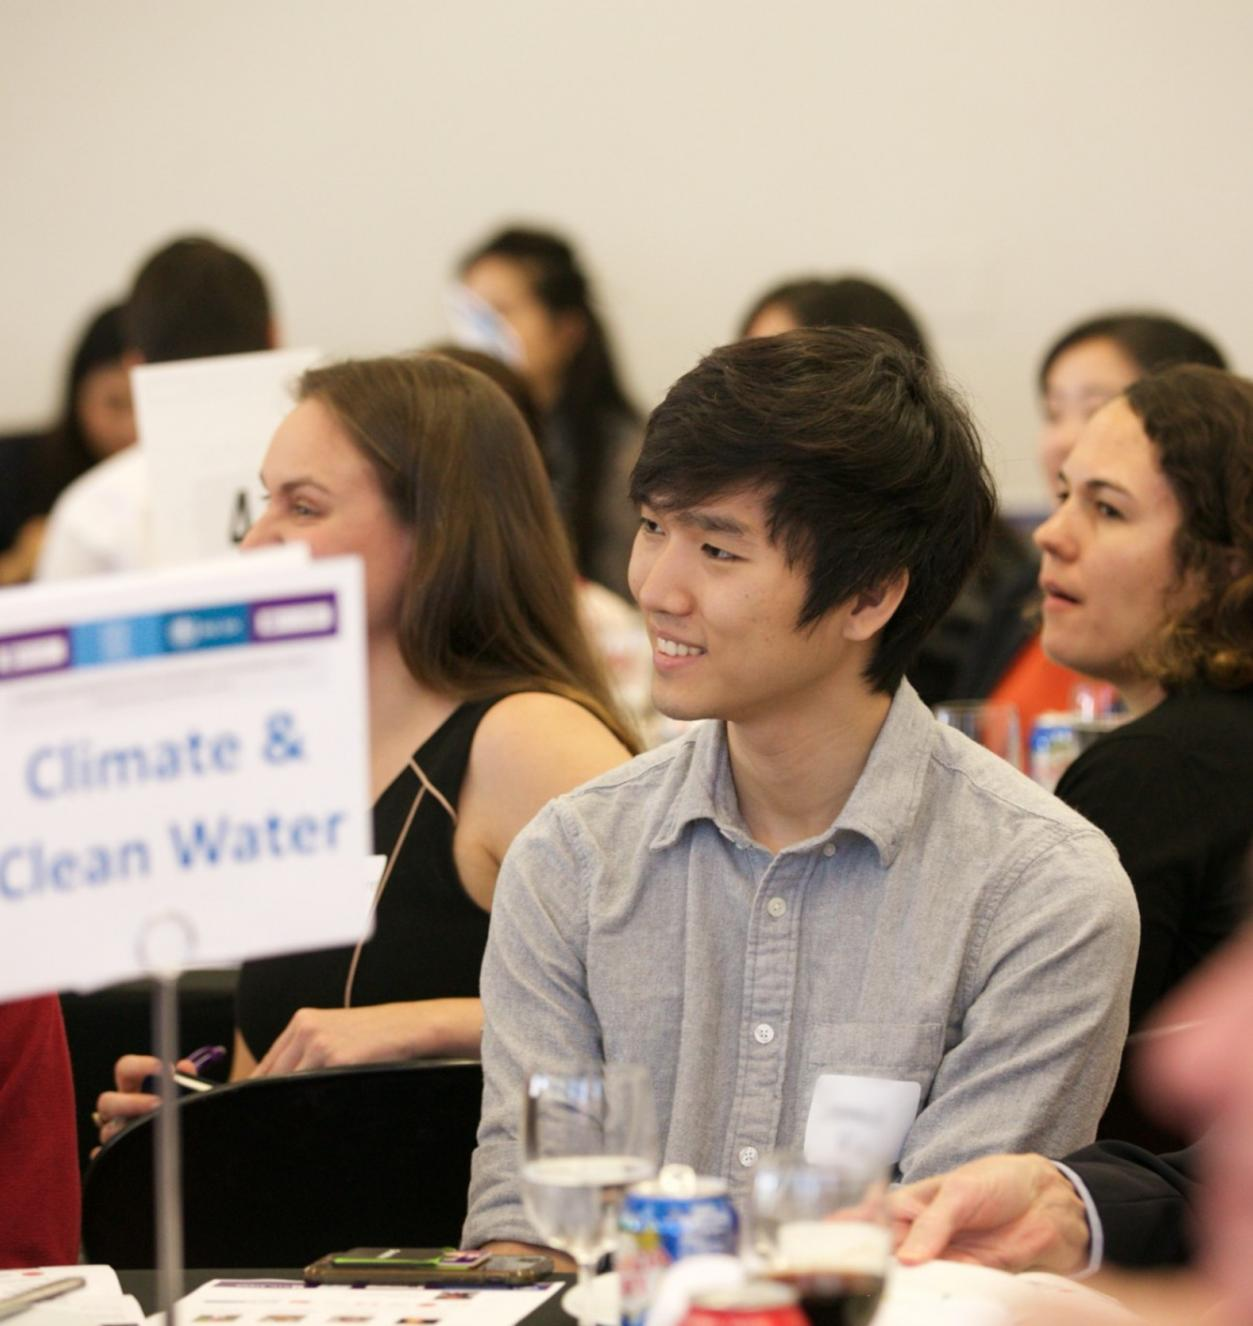 Young man in focus sitting at a table with a sign reading Climate & Clean Water.